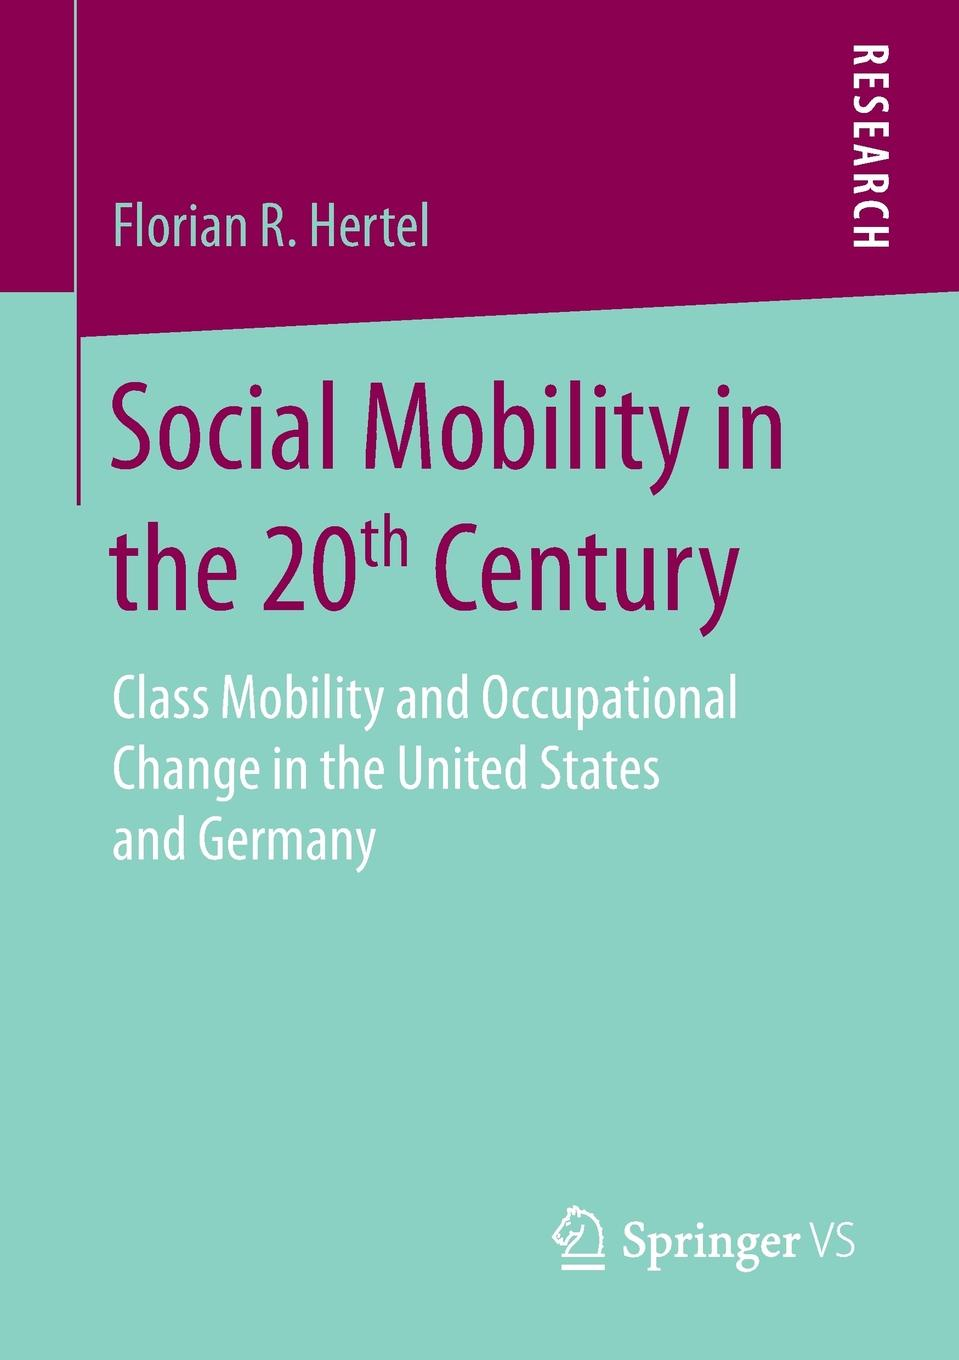 цены Florian R. Hertel Social Mobility in the 20th Century. Class Mobility and Occupational Change in the United States and Germany